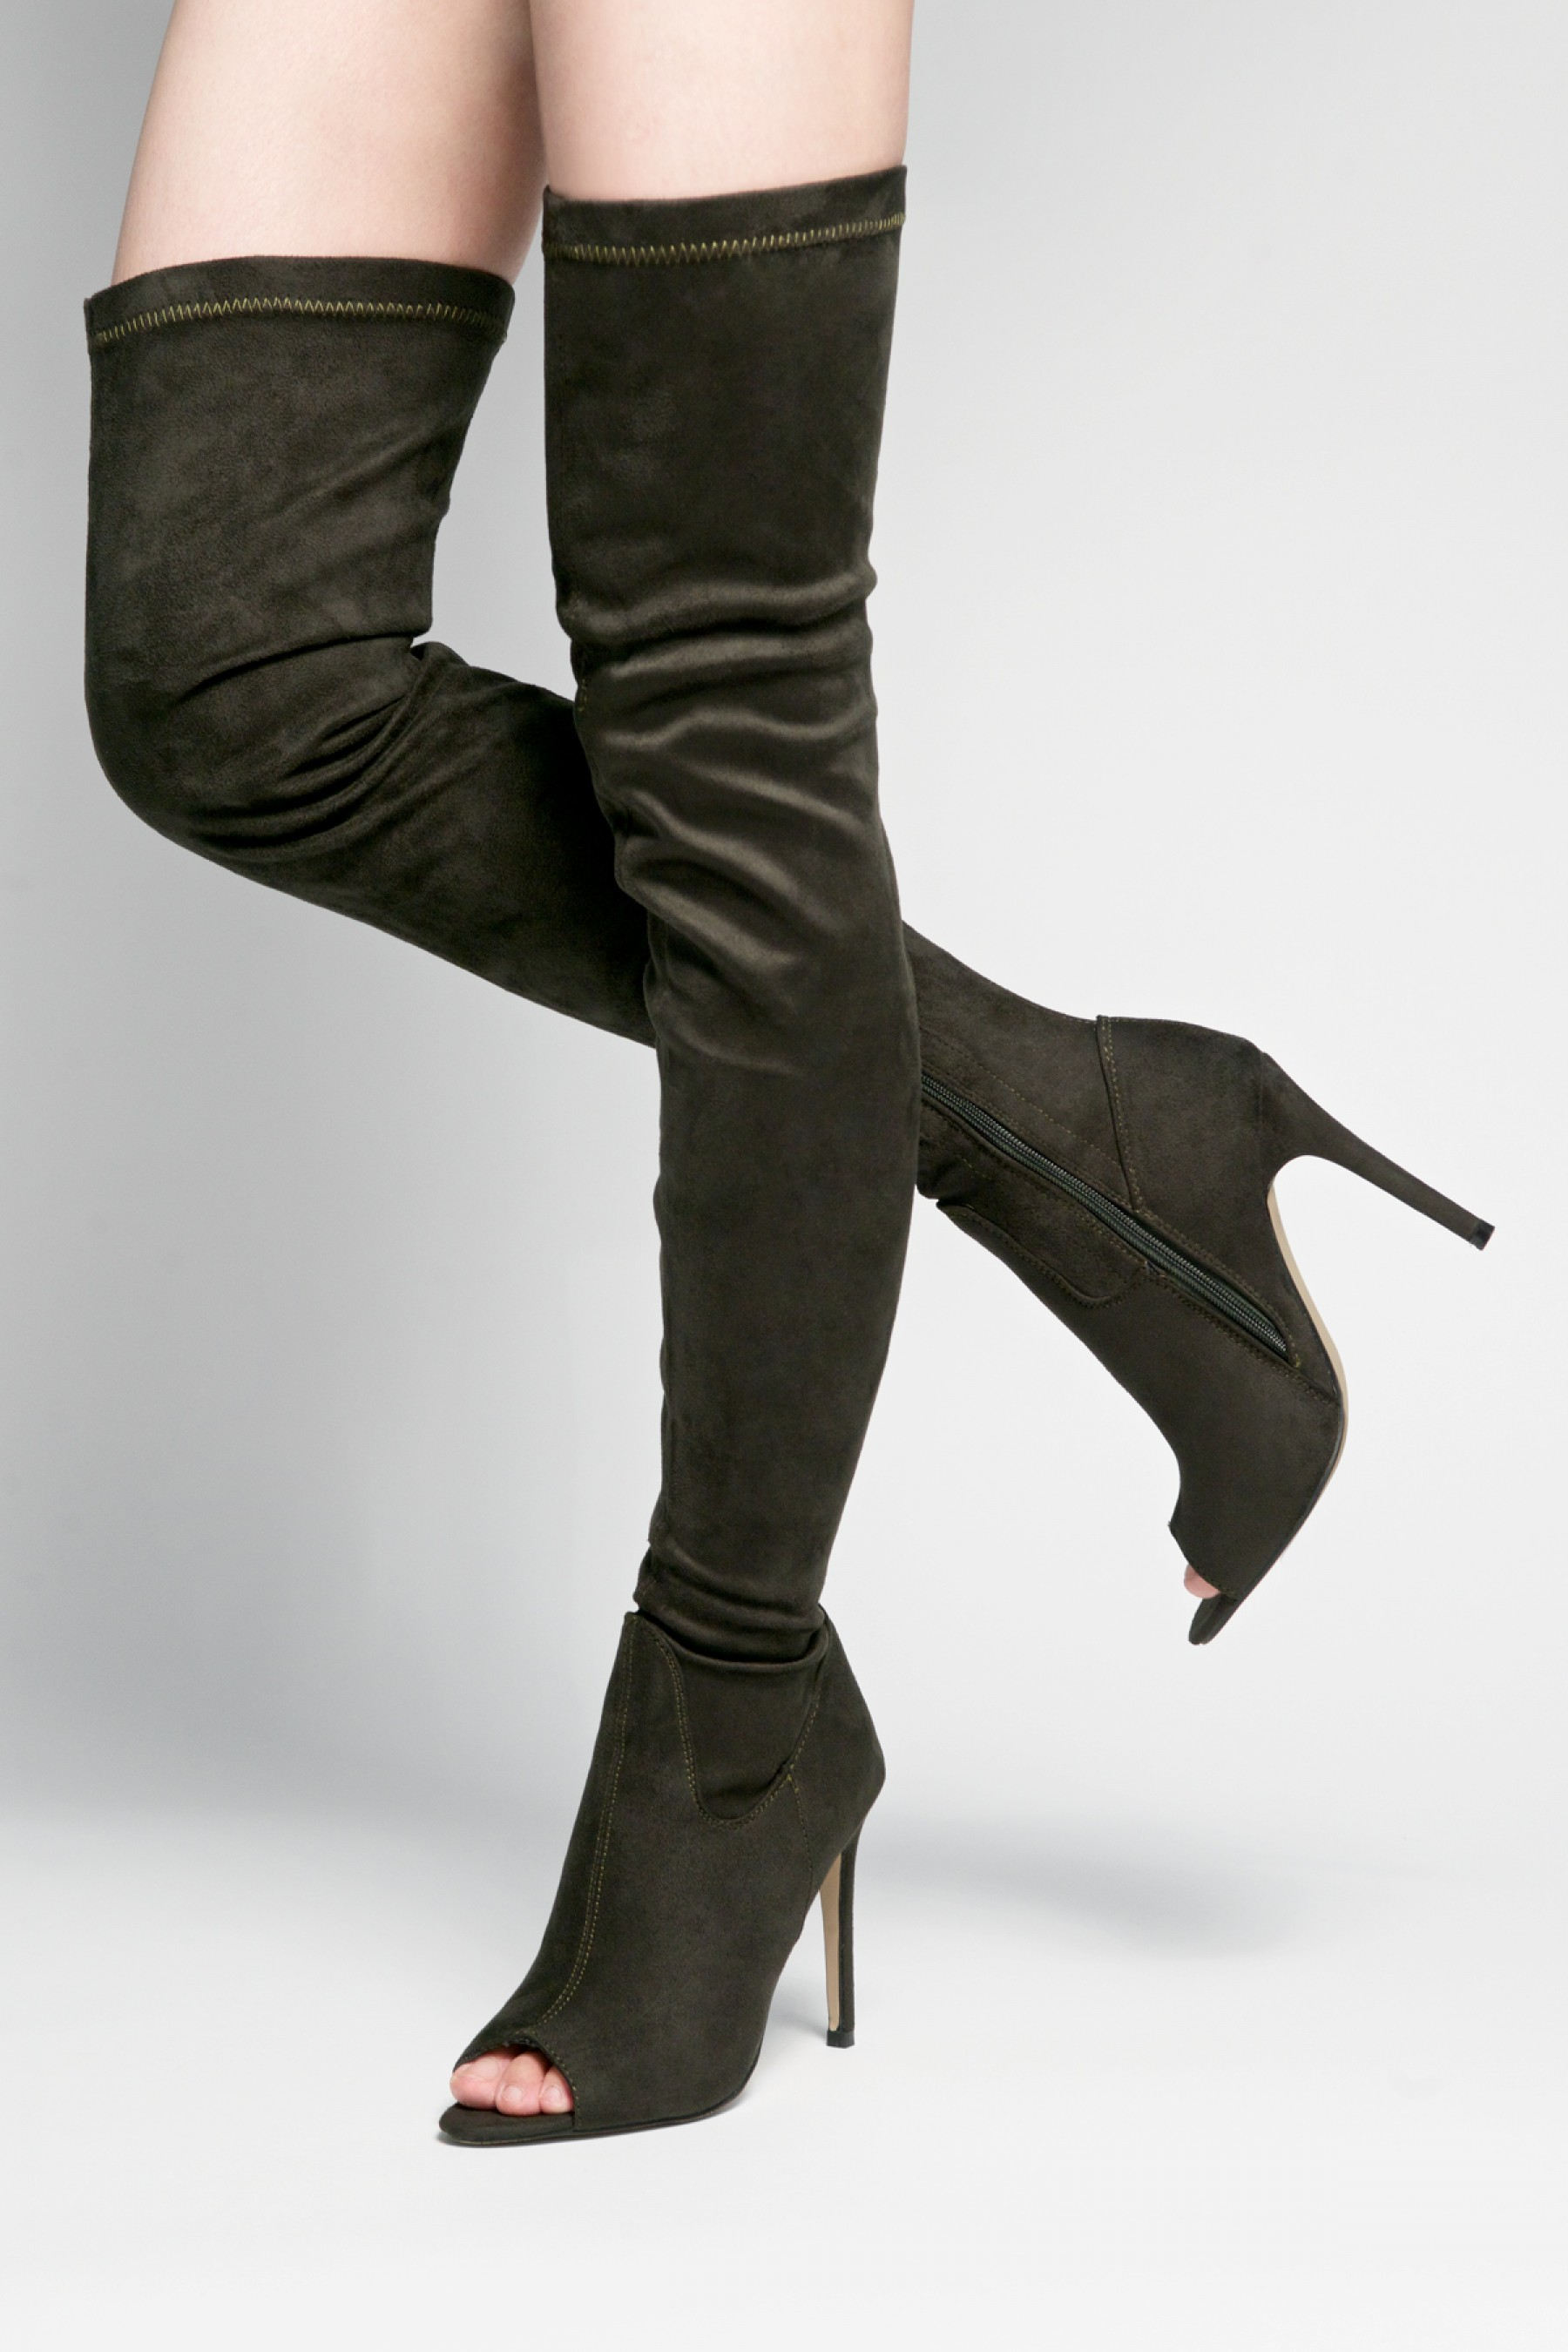 HerStyle Avery peep toe, thigh high, stiletto heel